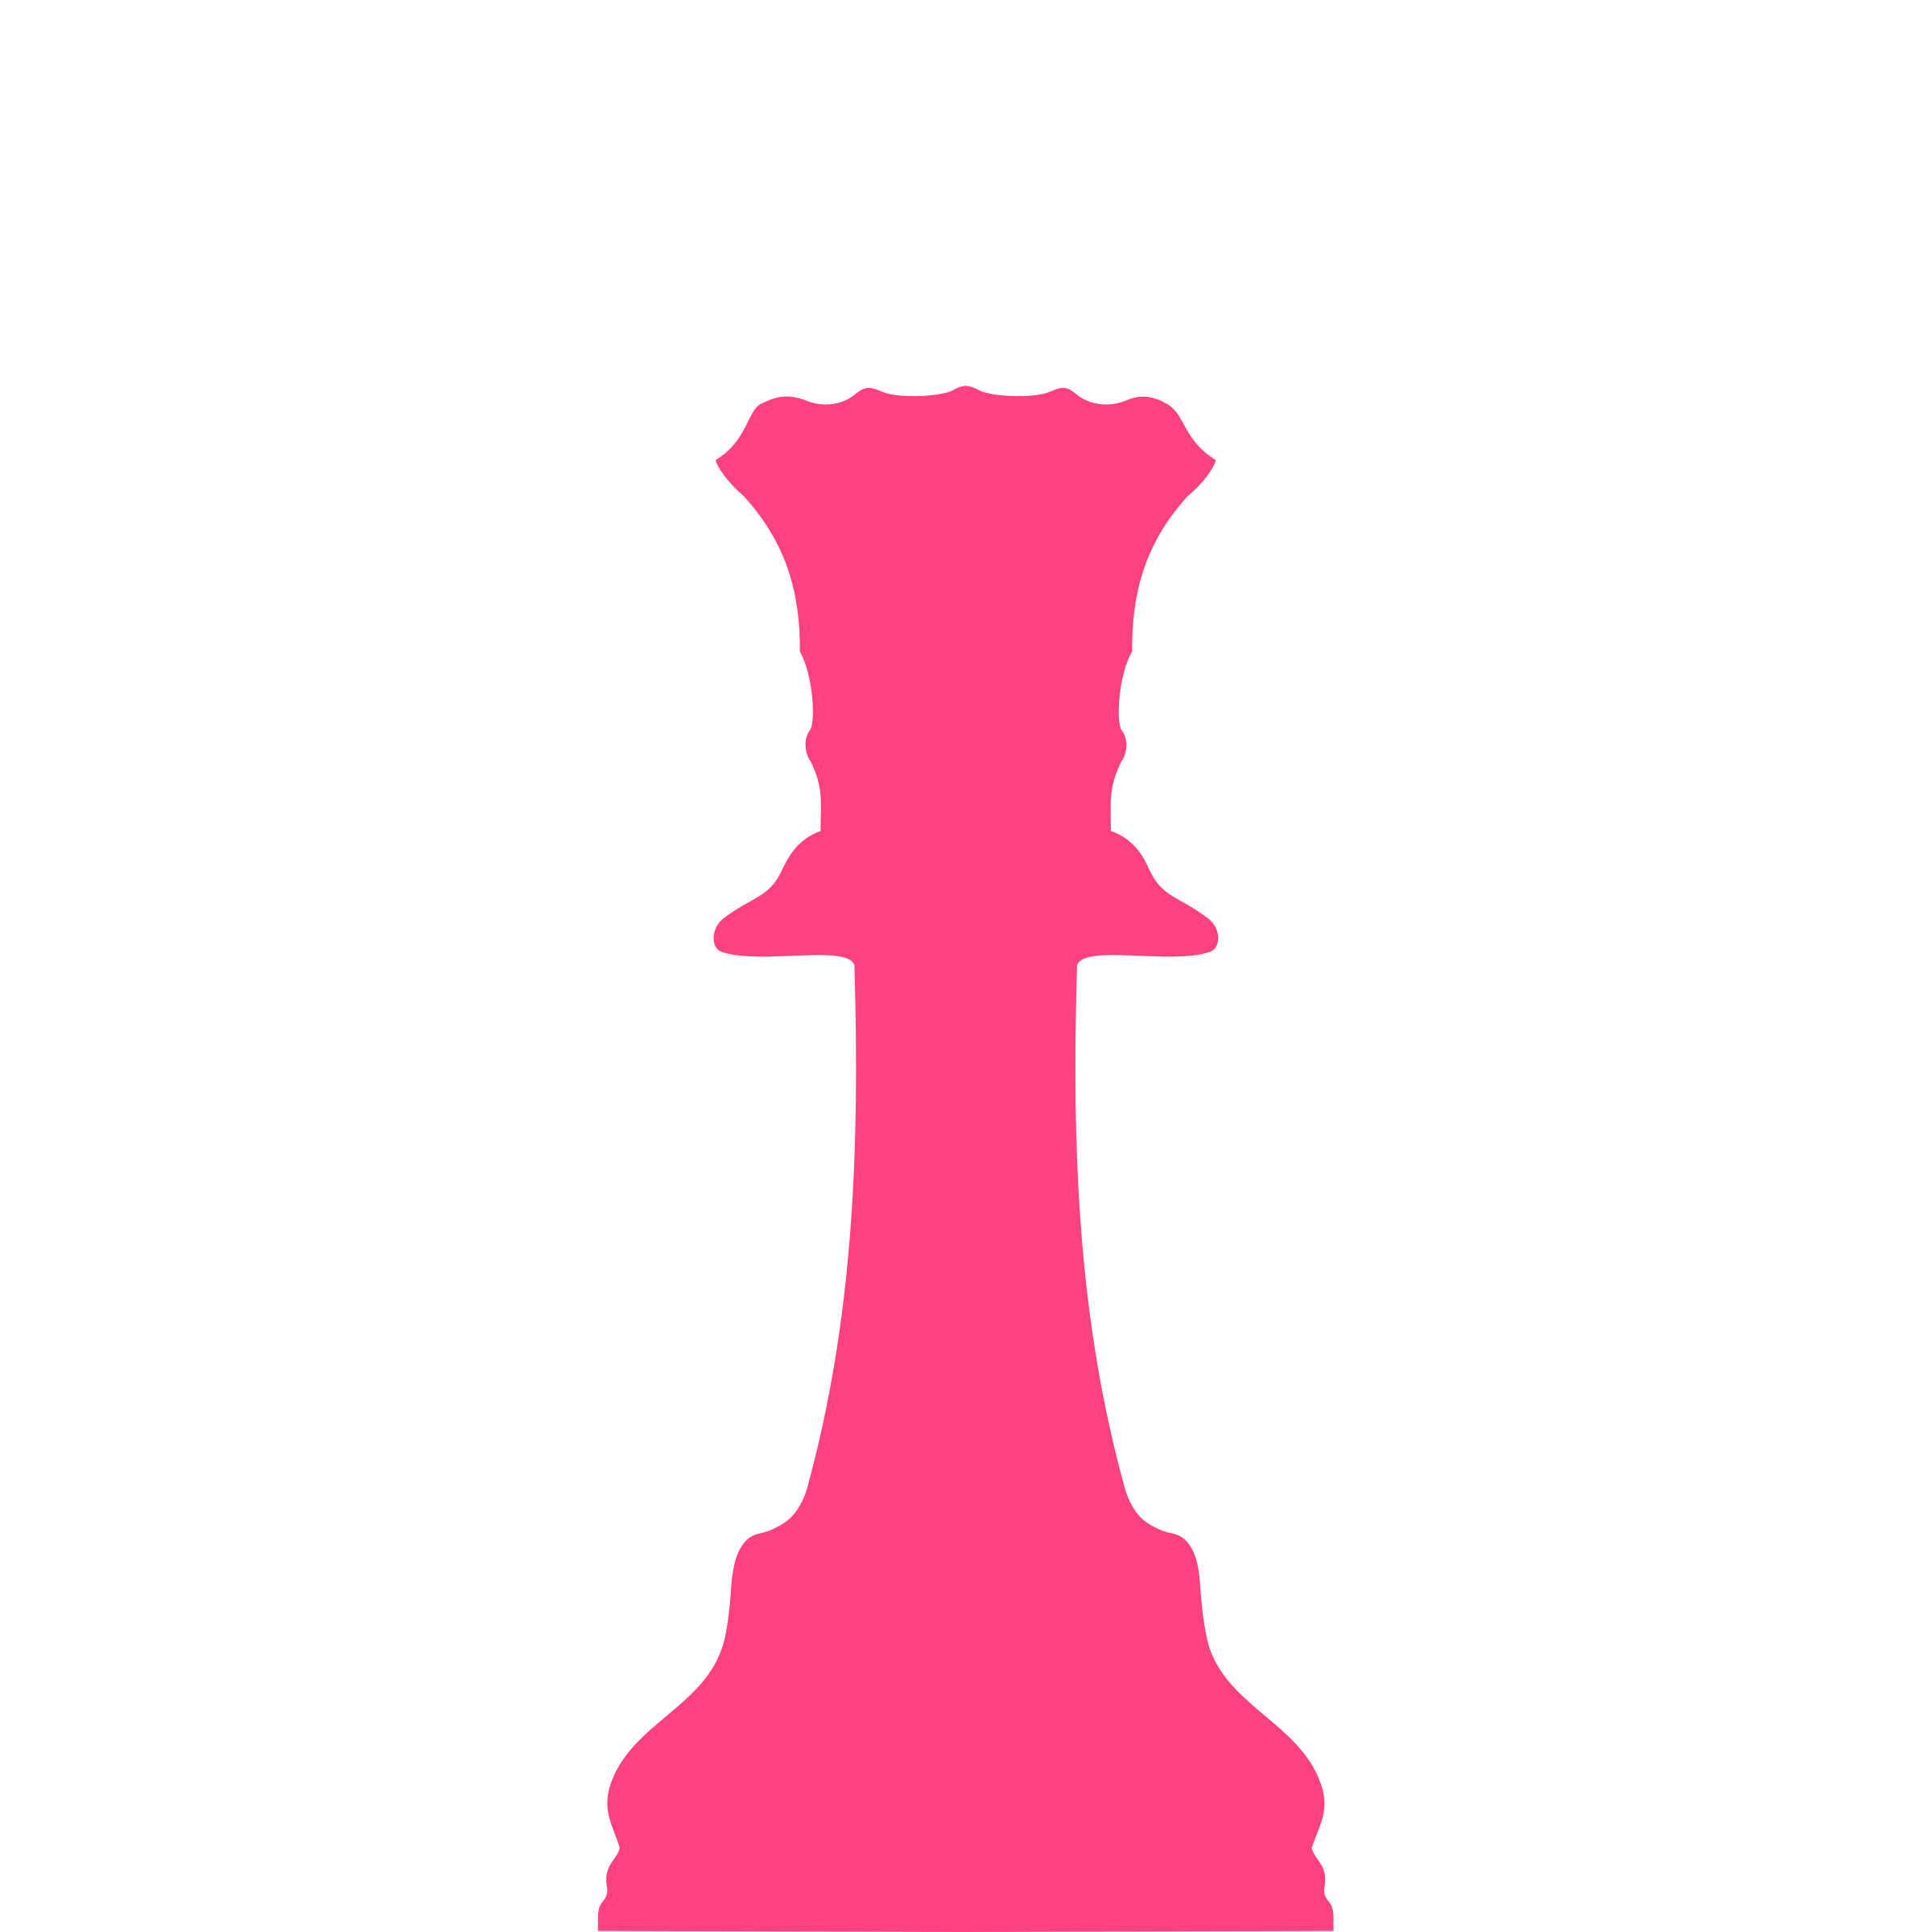 2400x2400 Silhouette Staunton Chess Piece Queen Dama Icons Png